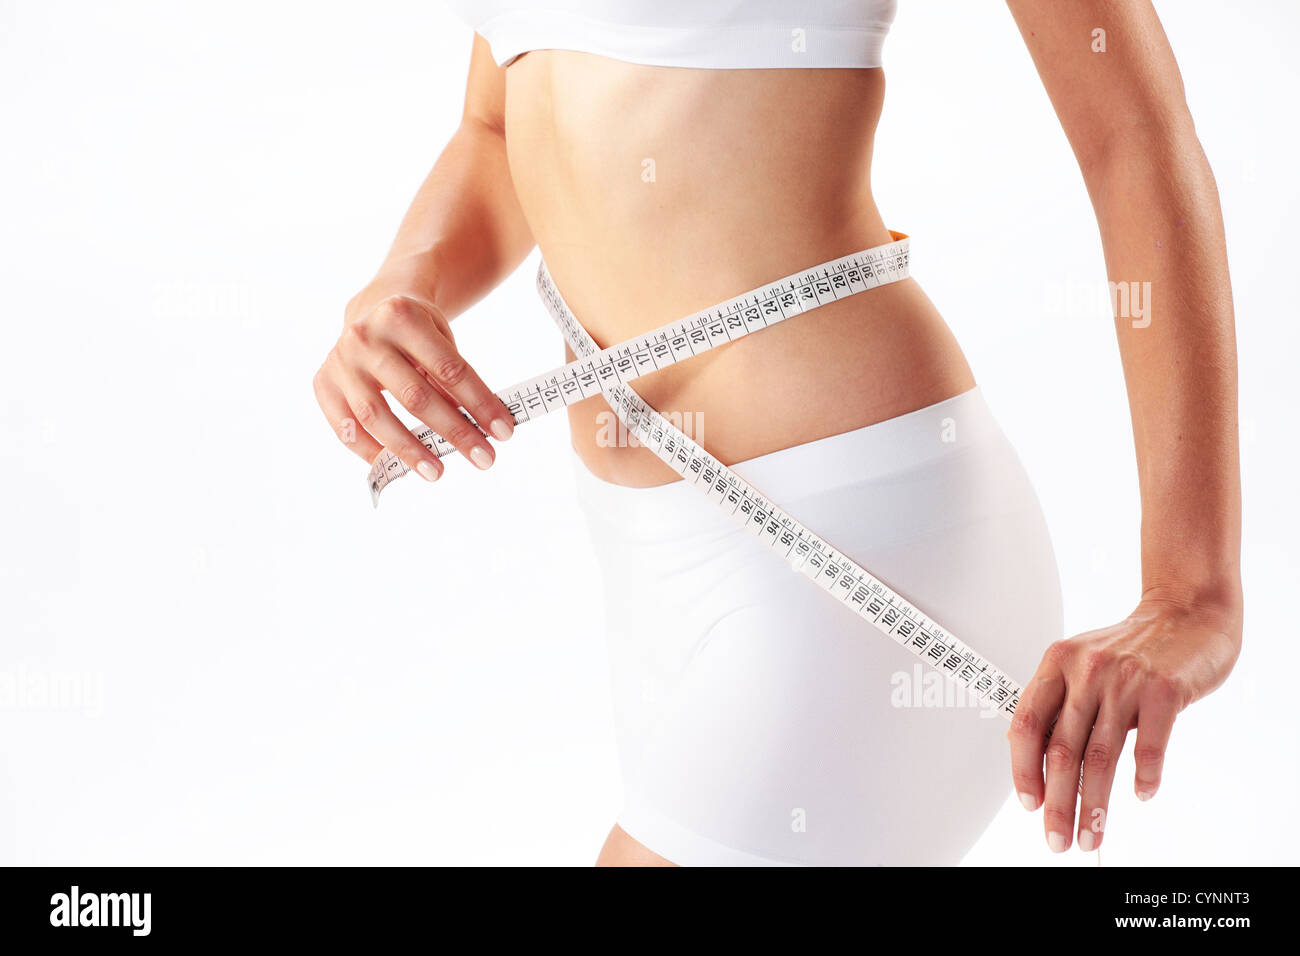 woman measuring her abdomen with a meter-stick - Stock Image